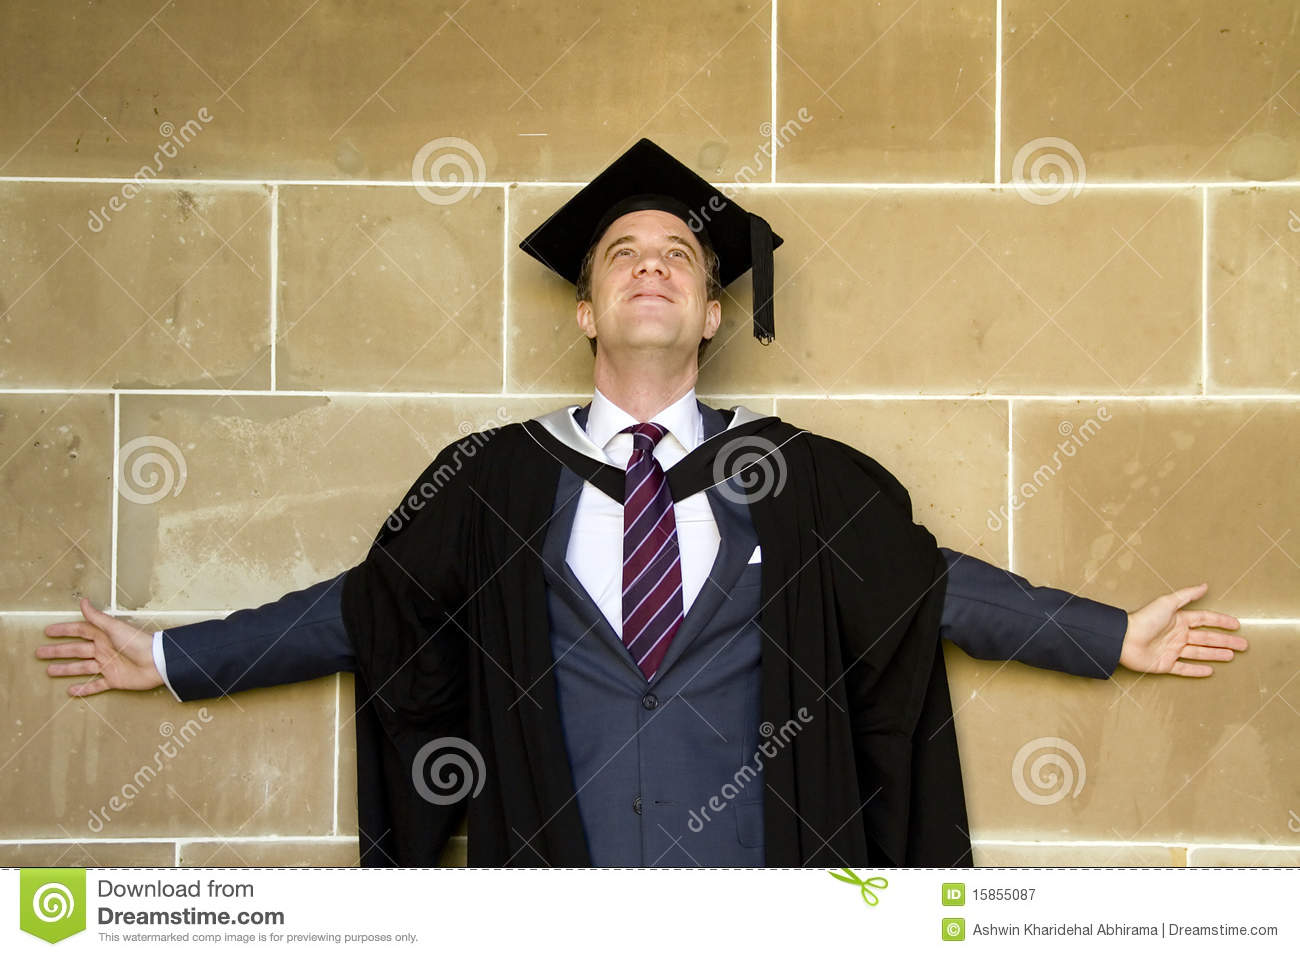 Young European Man In A Graduation Gown. Stock Image - Image of ...